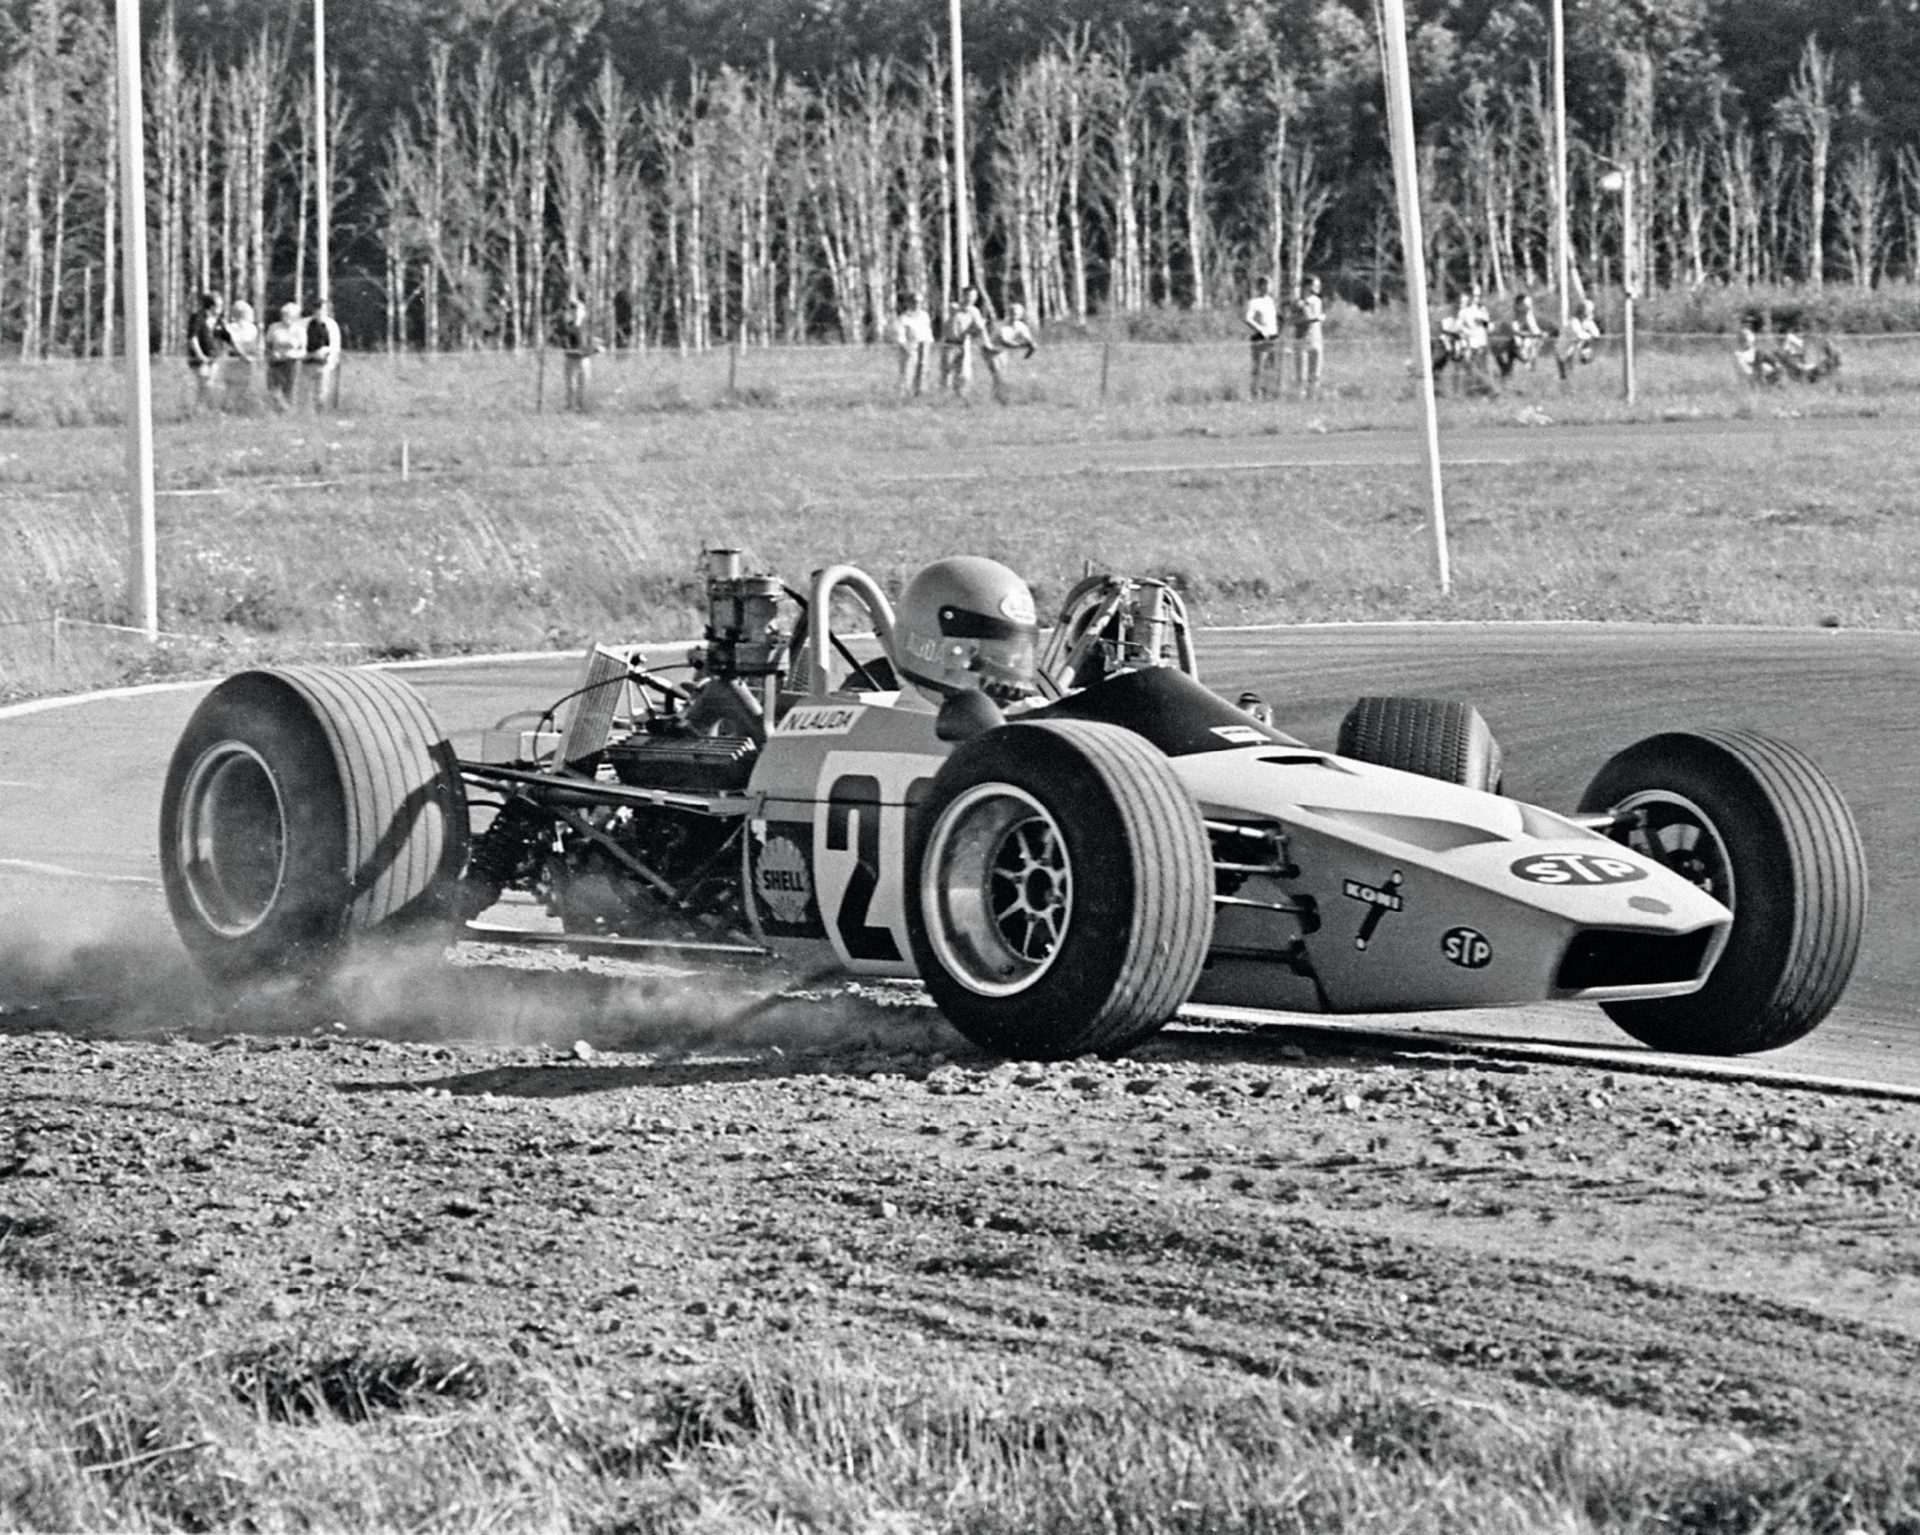 Formula 3 in 1970 wasn't an easy season for the young Lauda, who struggled to make an impact with the un-winged McNamara chassis